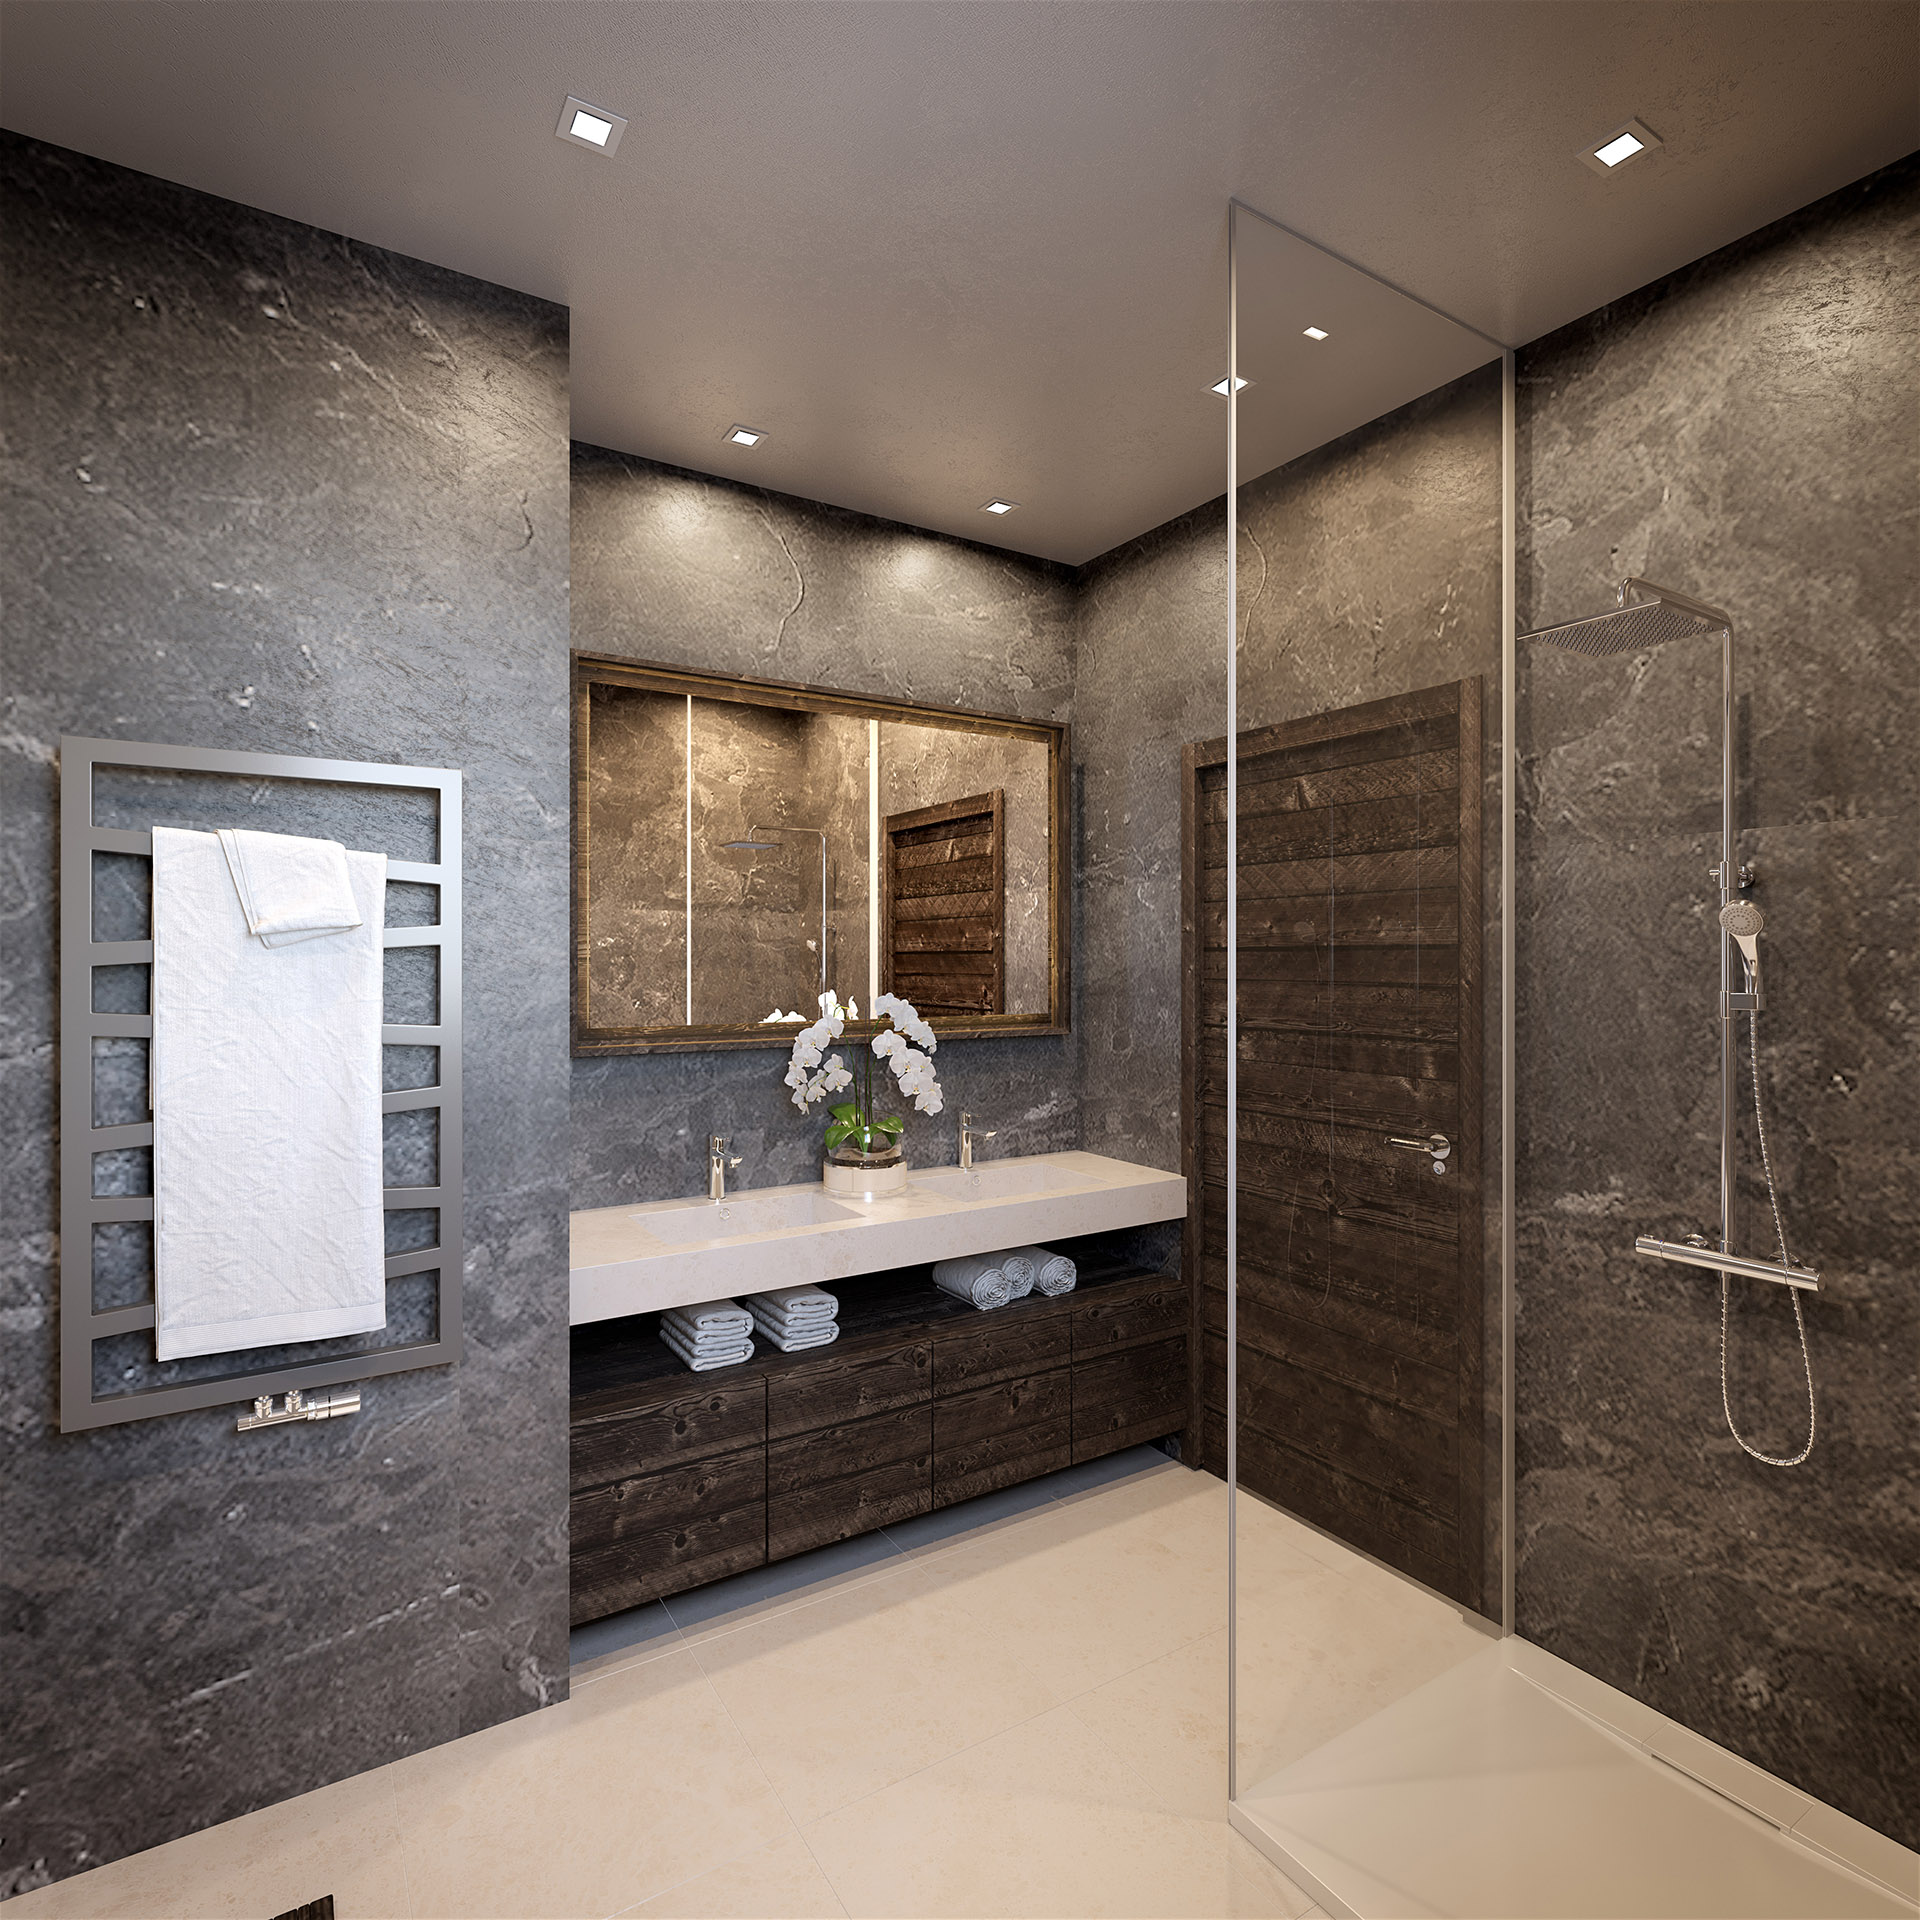 3D visualization of a luxurious bathroom in a chalet